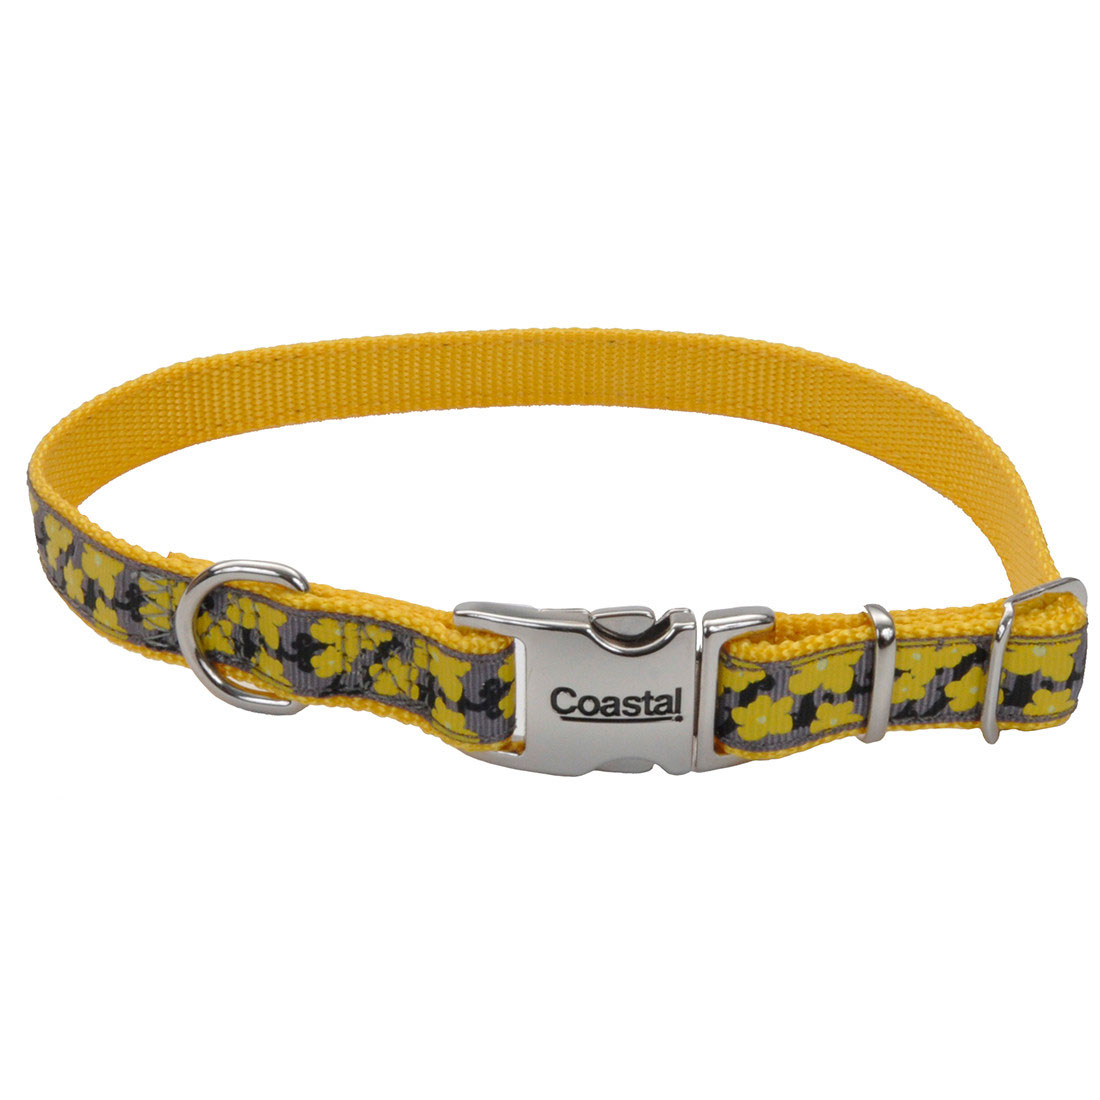 Ribbon Adjustable Collar with Metal Buckle for Dogs, Yellow Buttercup Image